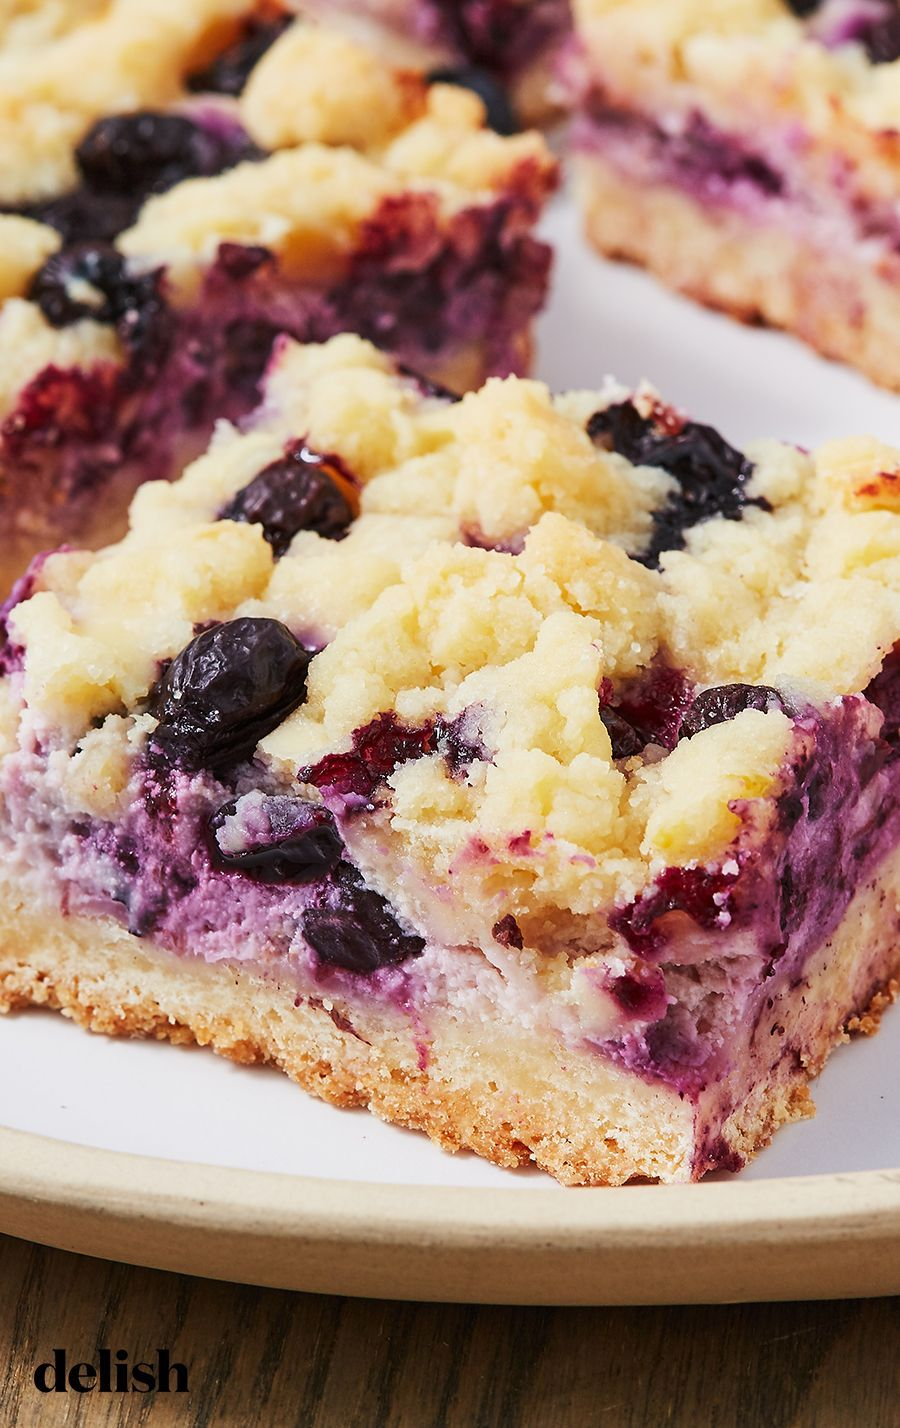 lemon blueberry desserts cheesecake bars zitronenblaubeerdessertkäsekuchenstangen lemon blueberry desserts cheesecake bars Bars desserts lemon  Curd desserts lemon...